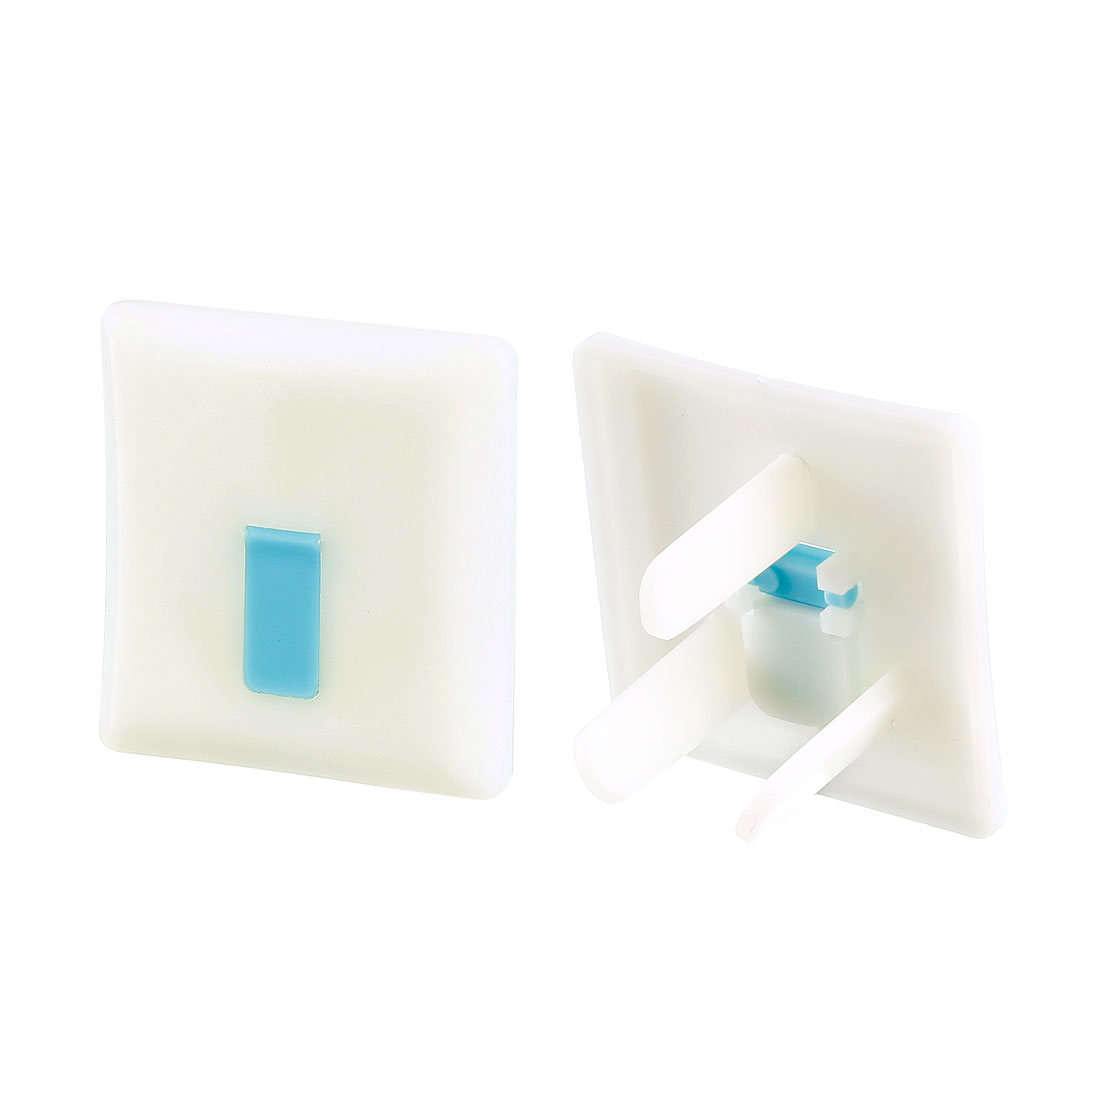 AU Standard 3 Prong Power Socket Covers Durable Electric Proofing Blue 40 Pcs